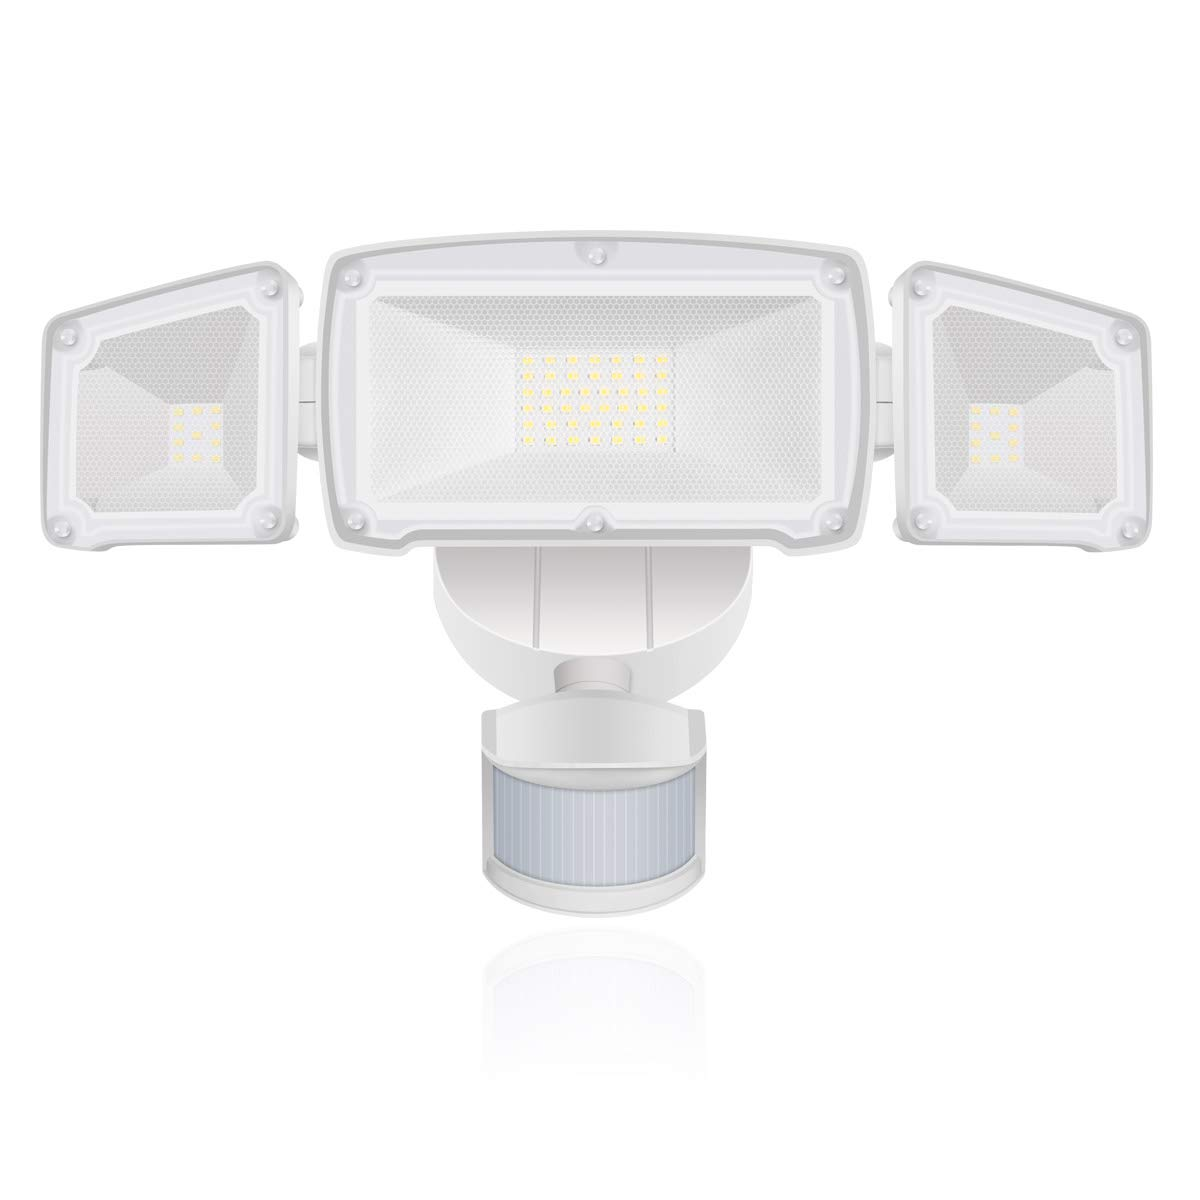 LED Motion Sensor Lights,LED Outdoor Security Light for Entryways, Stairs, Yard and Garage (42W White)